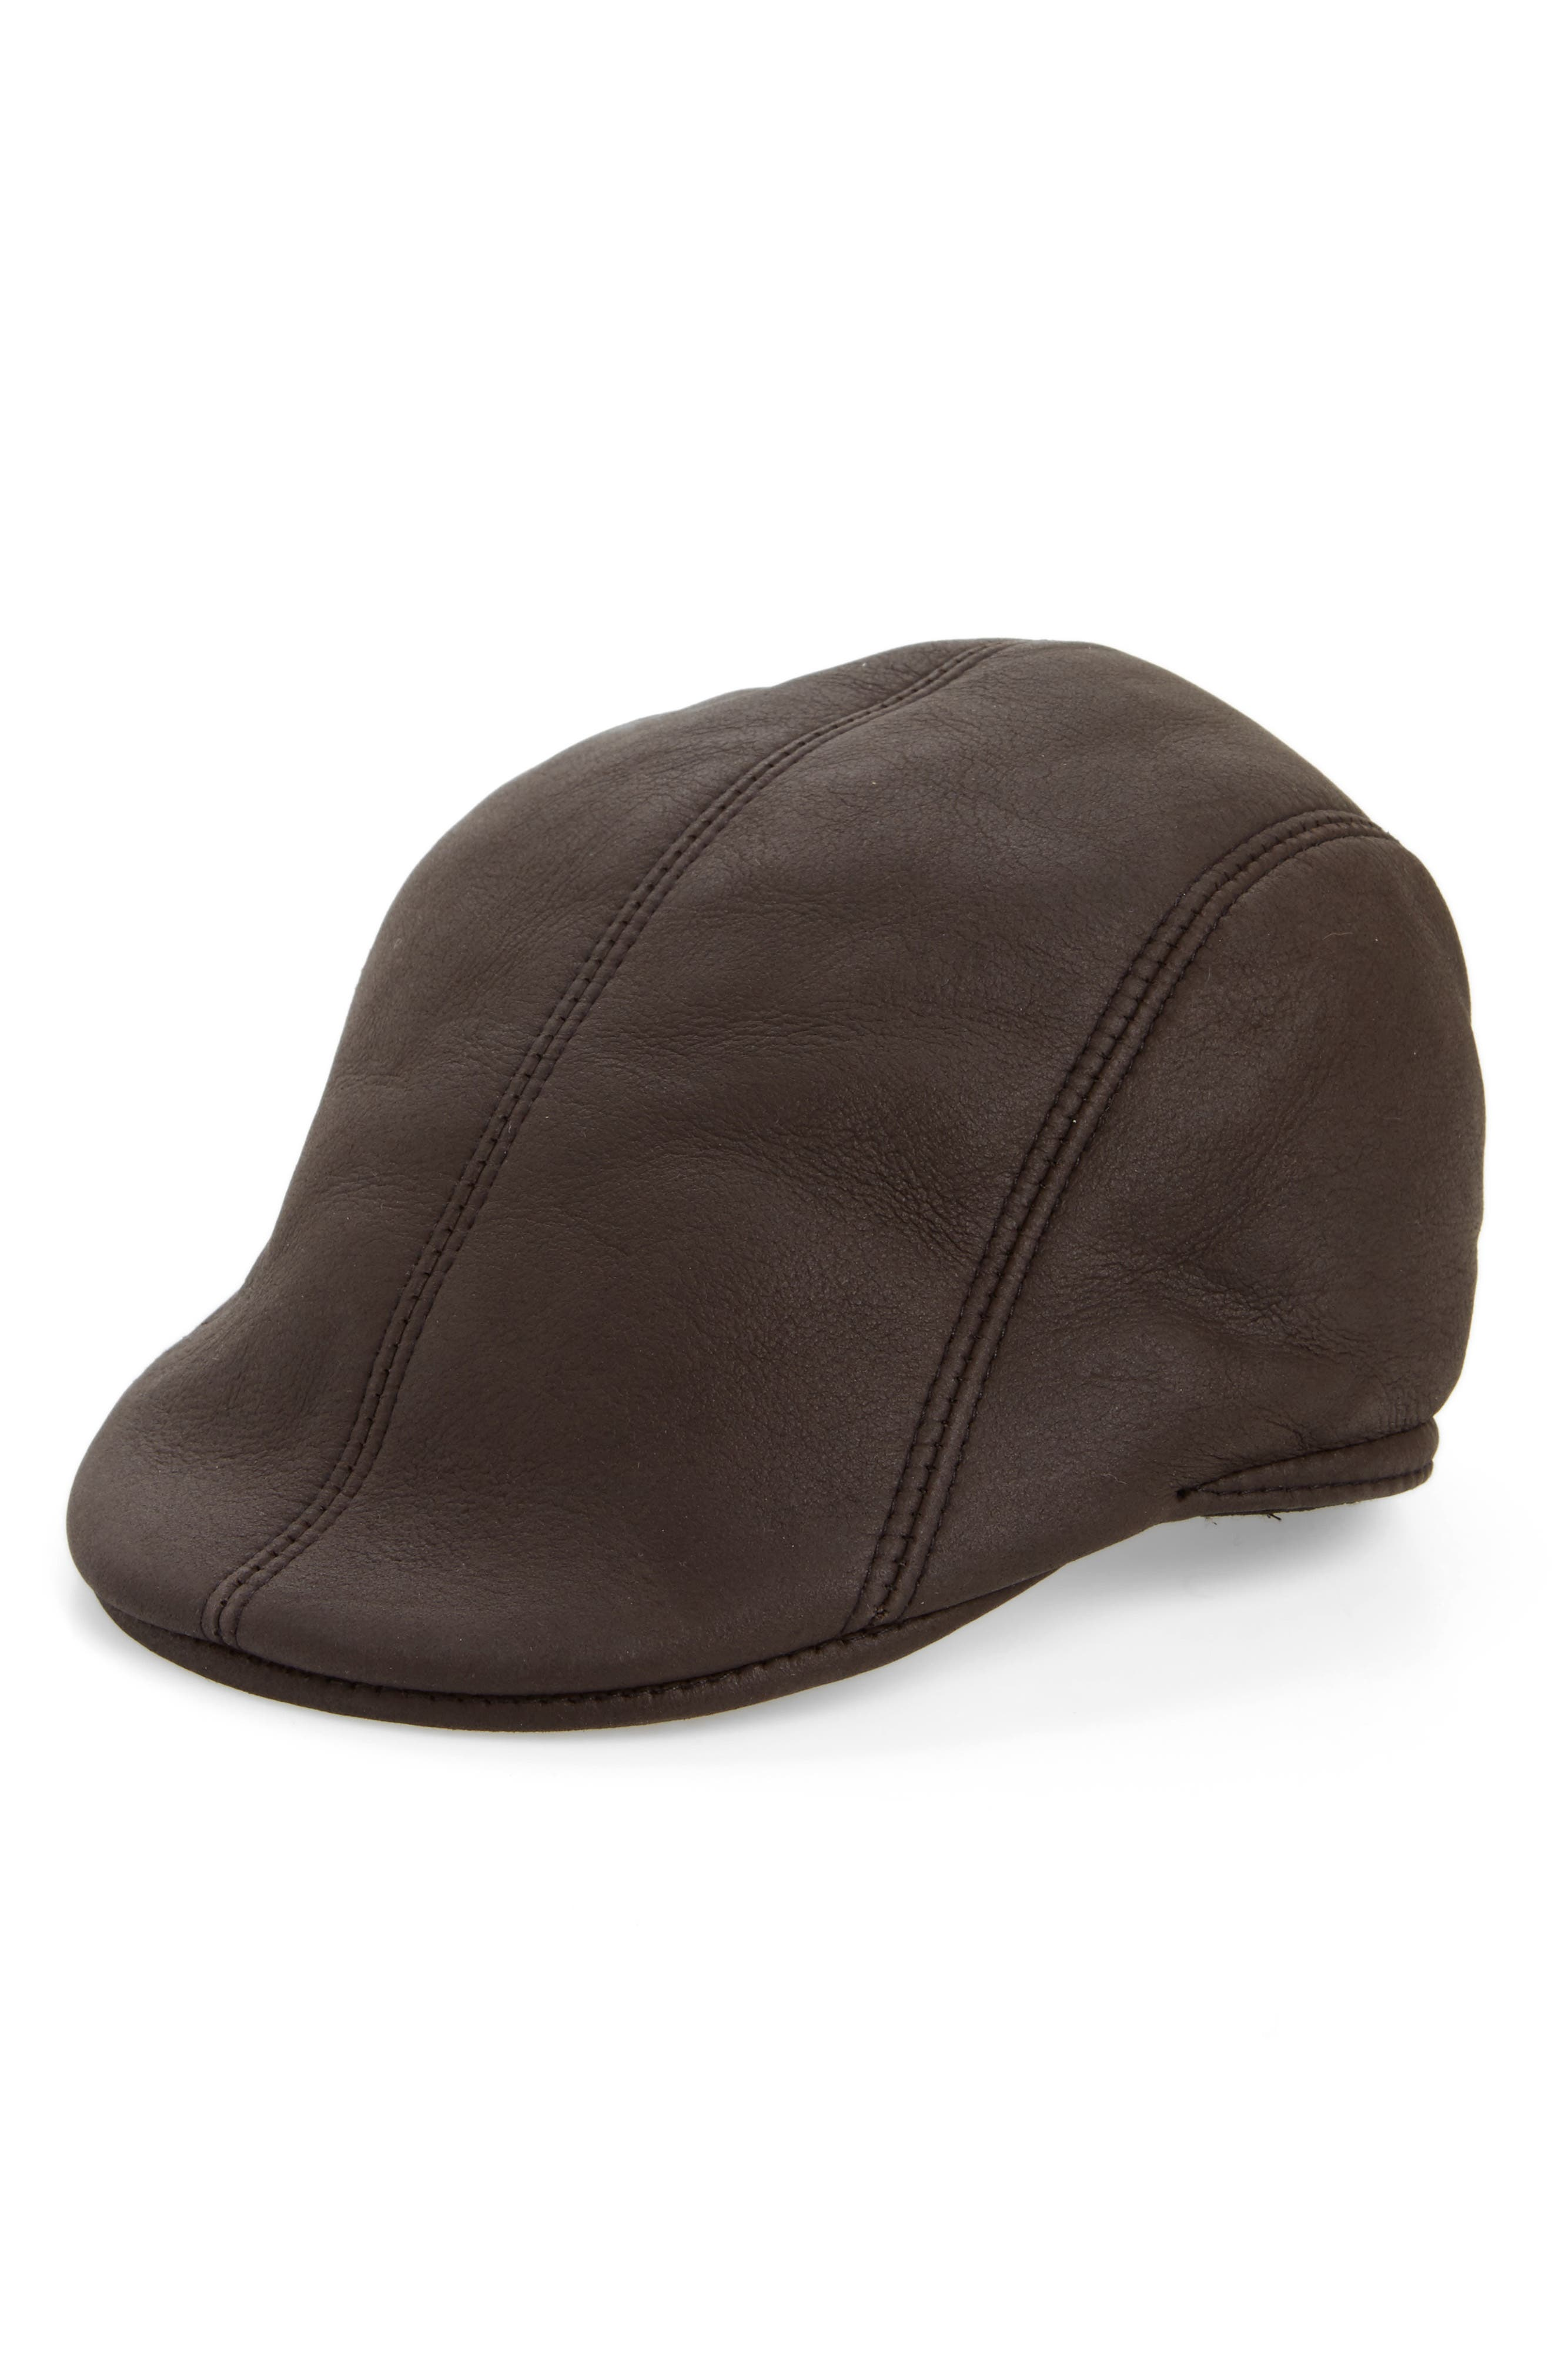 Genuine Shearling Leather Driving Cap,                         Main,                         color, Brown